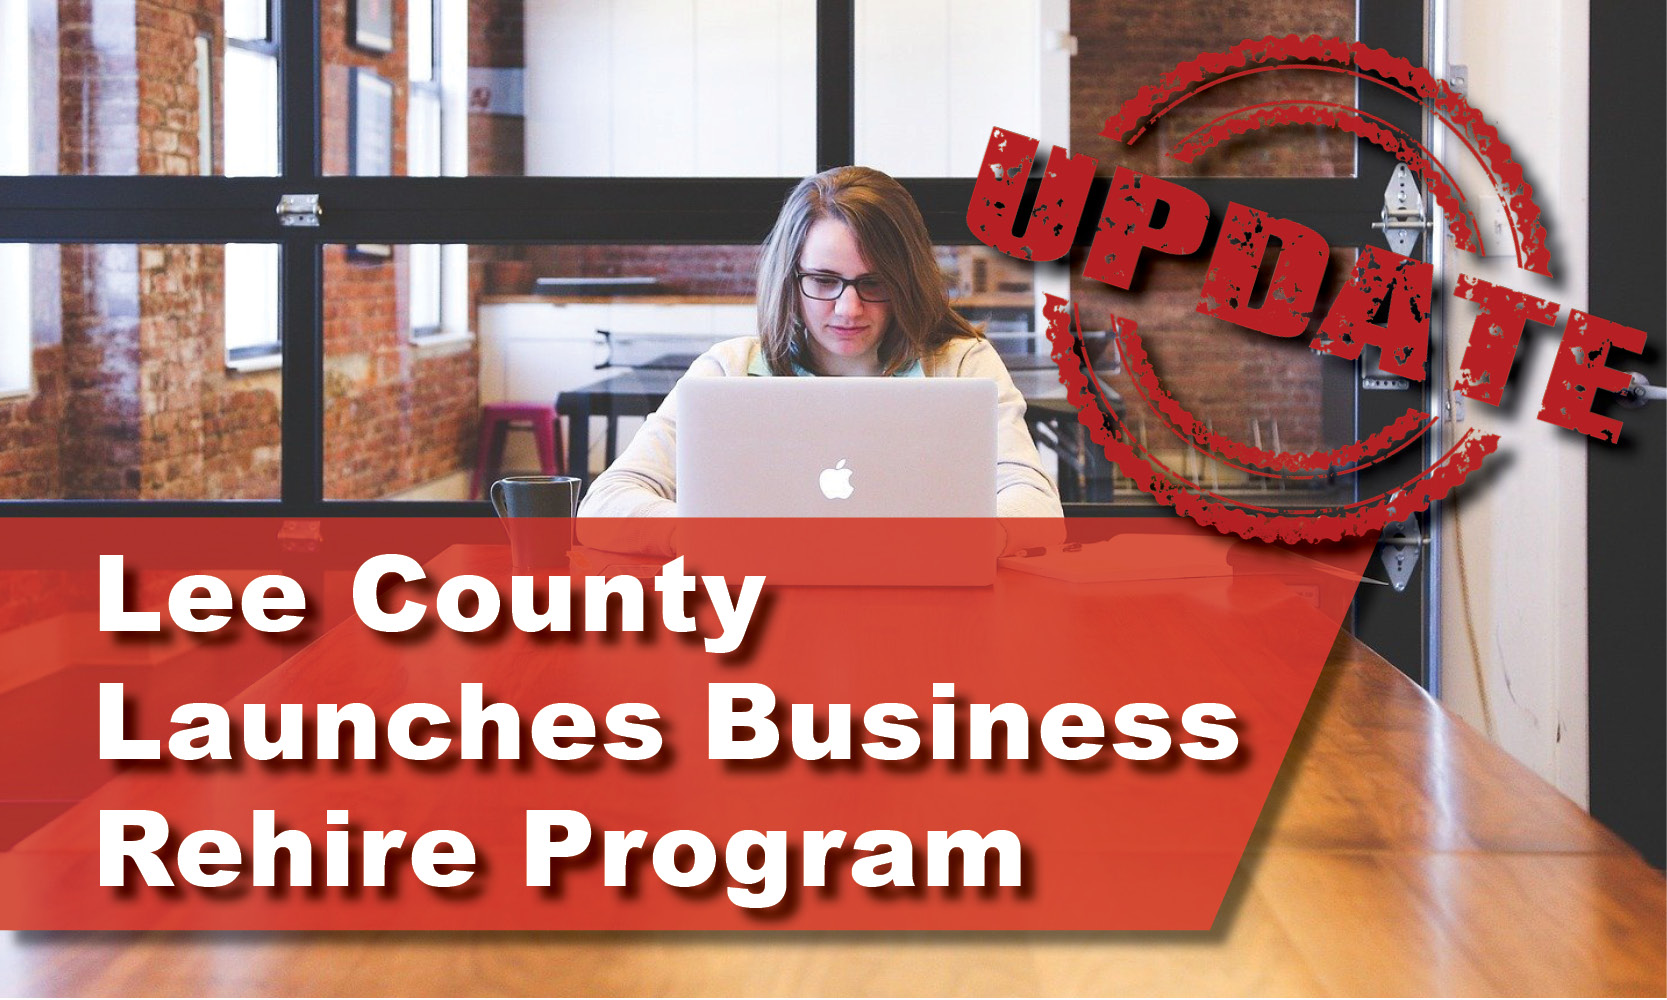 Update: Lee County Launches Business Rehire Program